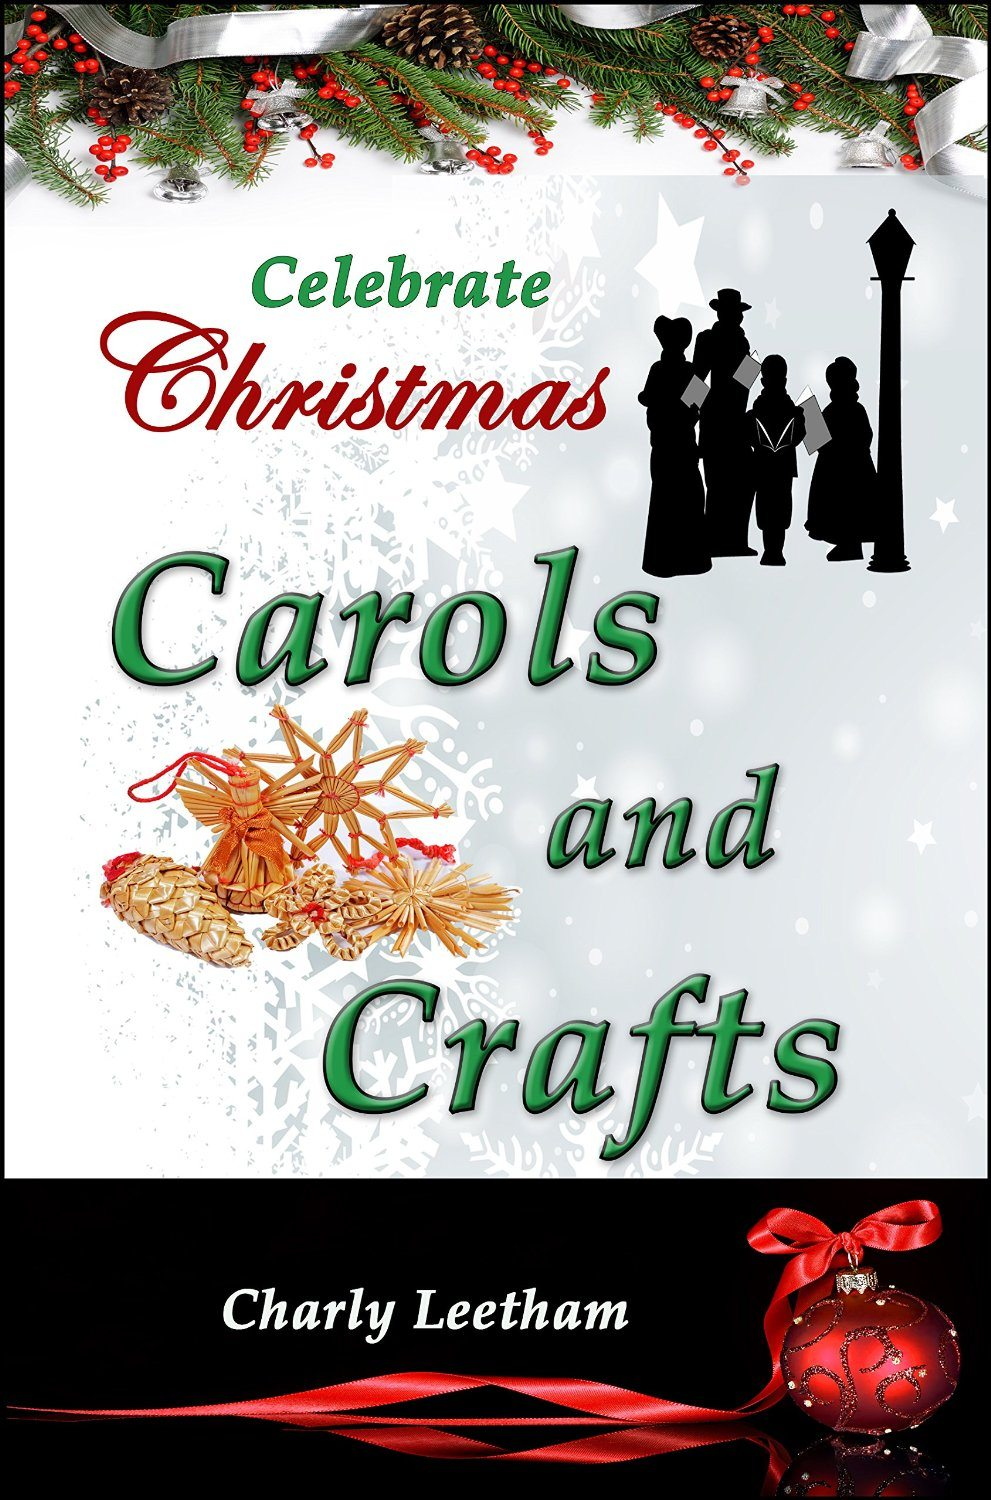 Things To Ask For Christmas.Celebrate Christmas Carols And Crafts The Celebrate Christmas Collection Book 3